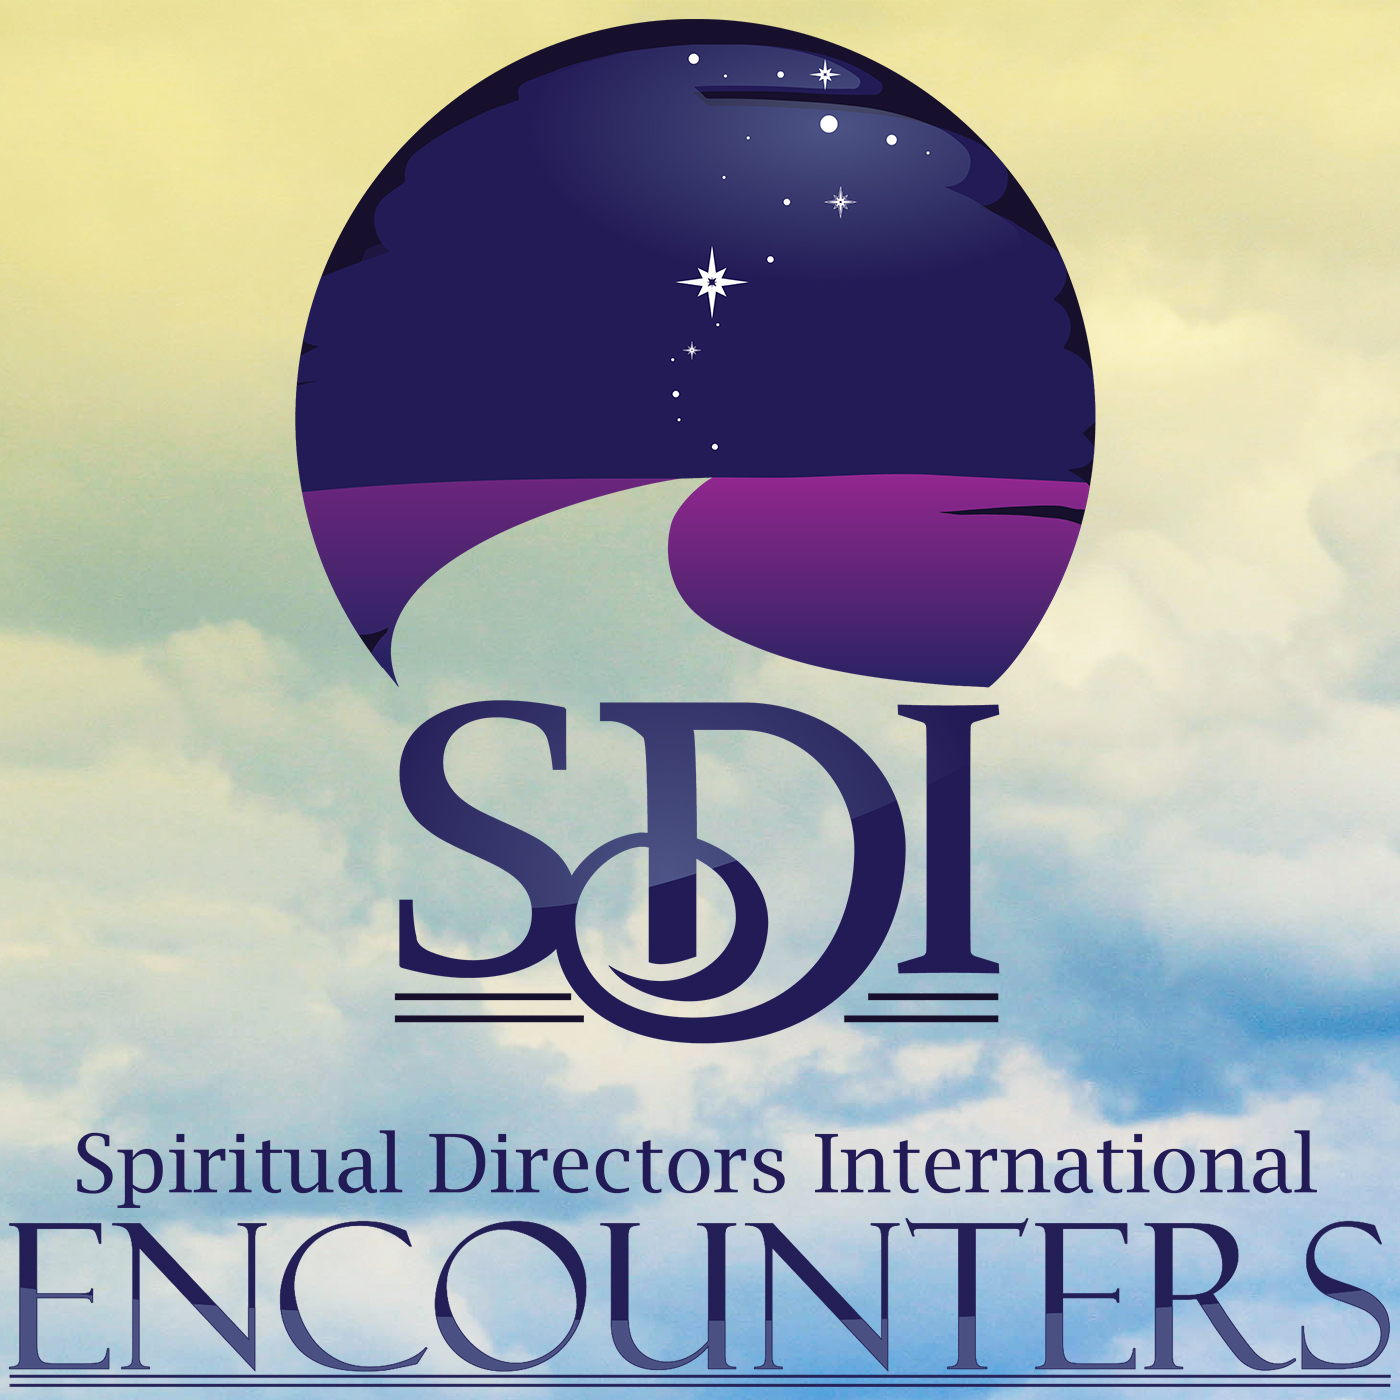 SDI Encounters